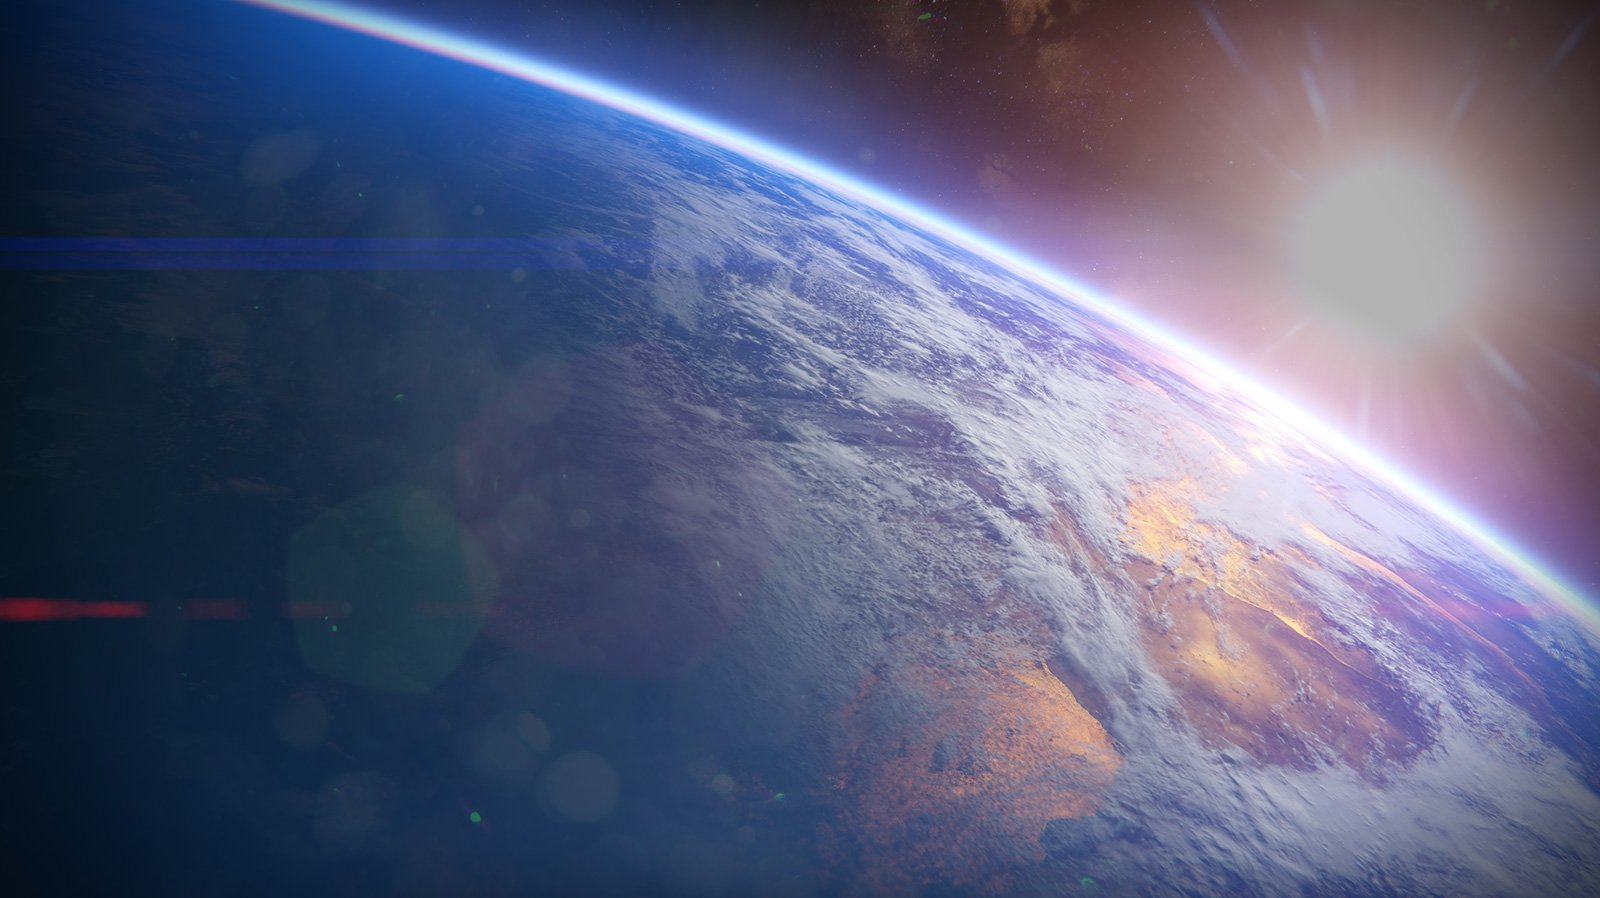 matchmaking destiny strikes Warmind, destiny 2's second expansion, launched tuesday without major incident but as is often the case with live software rollouts, there's a list of bugs that players have encountered since.